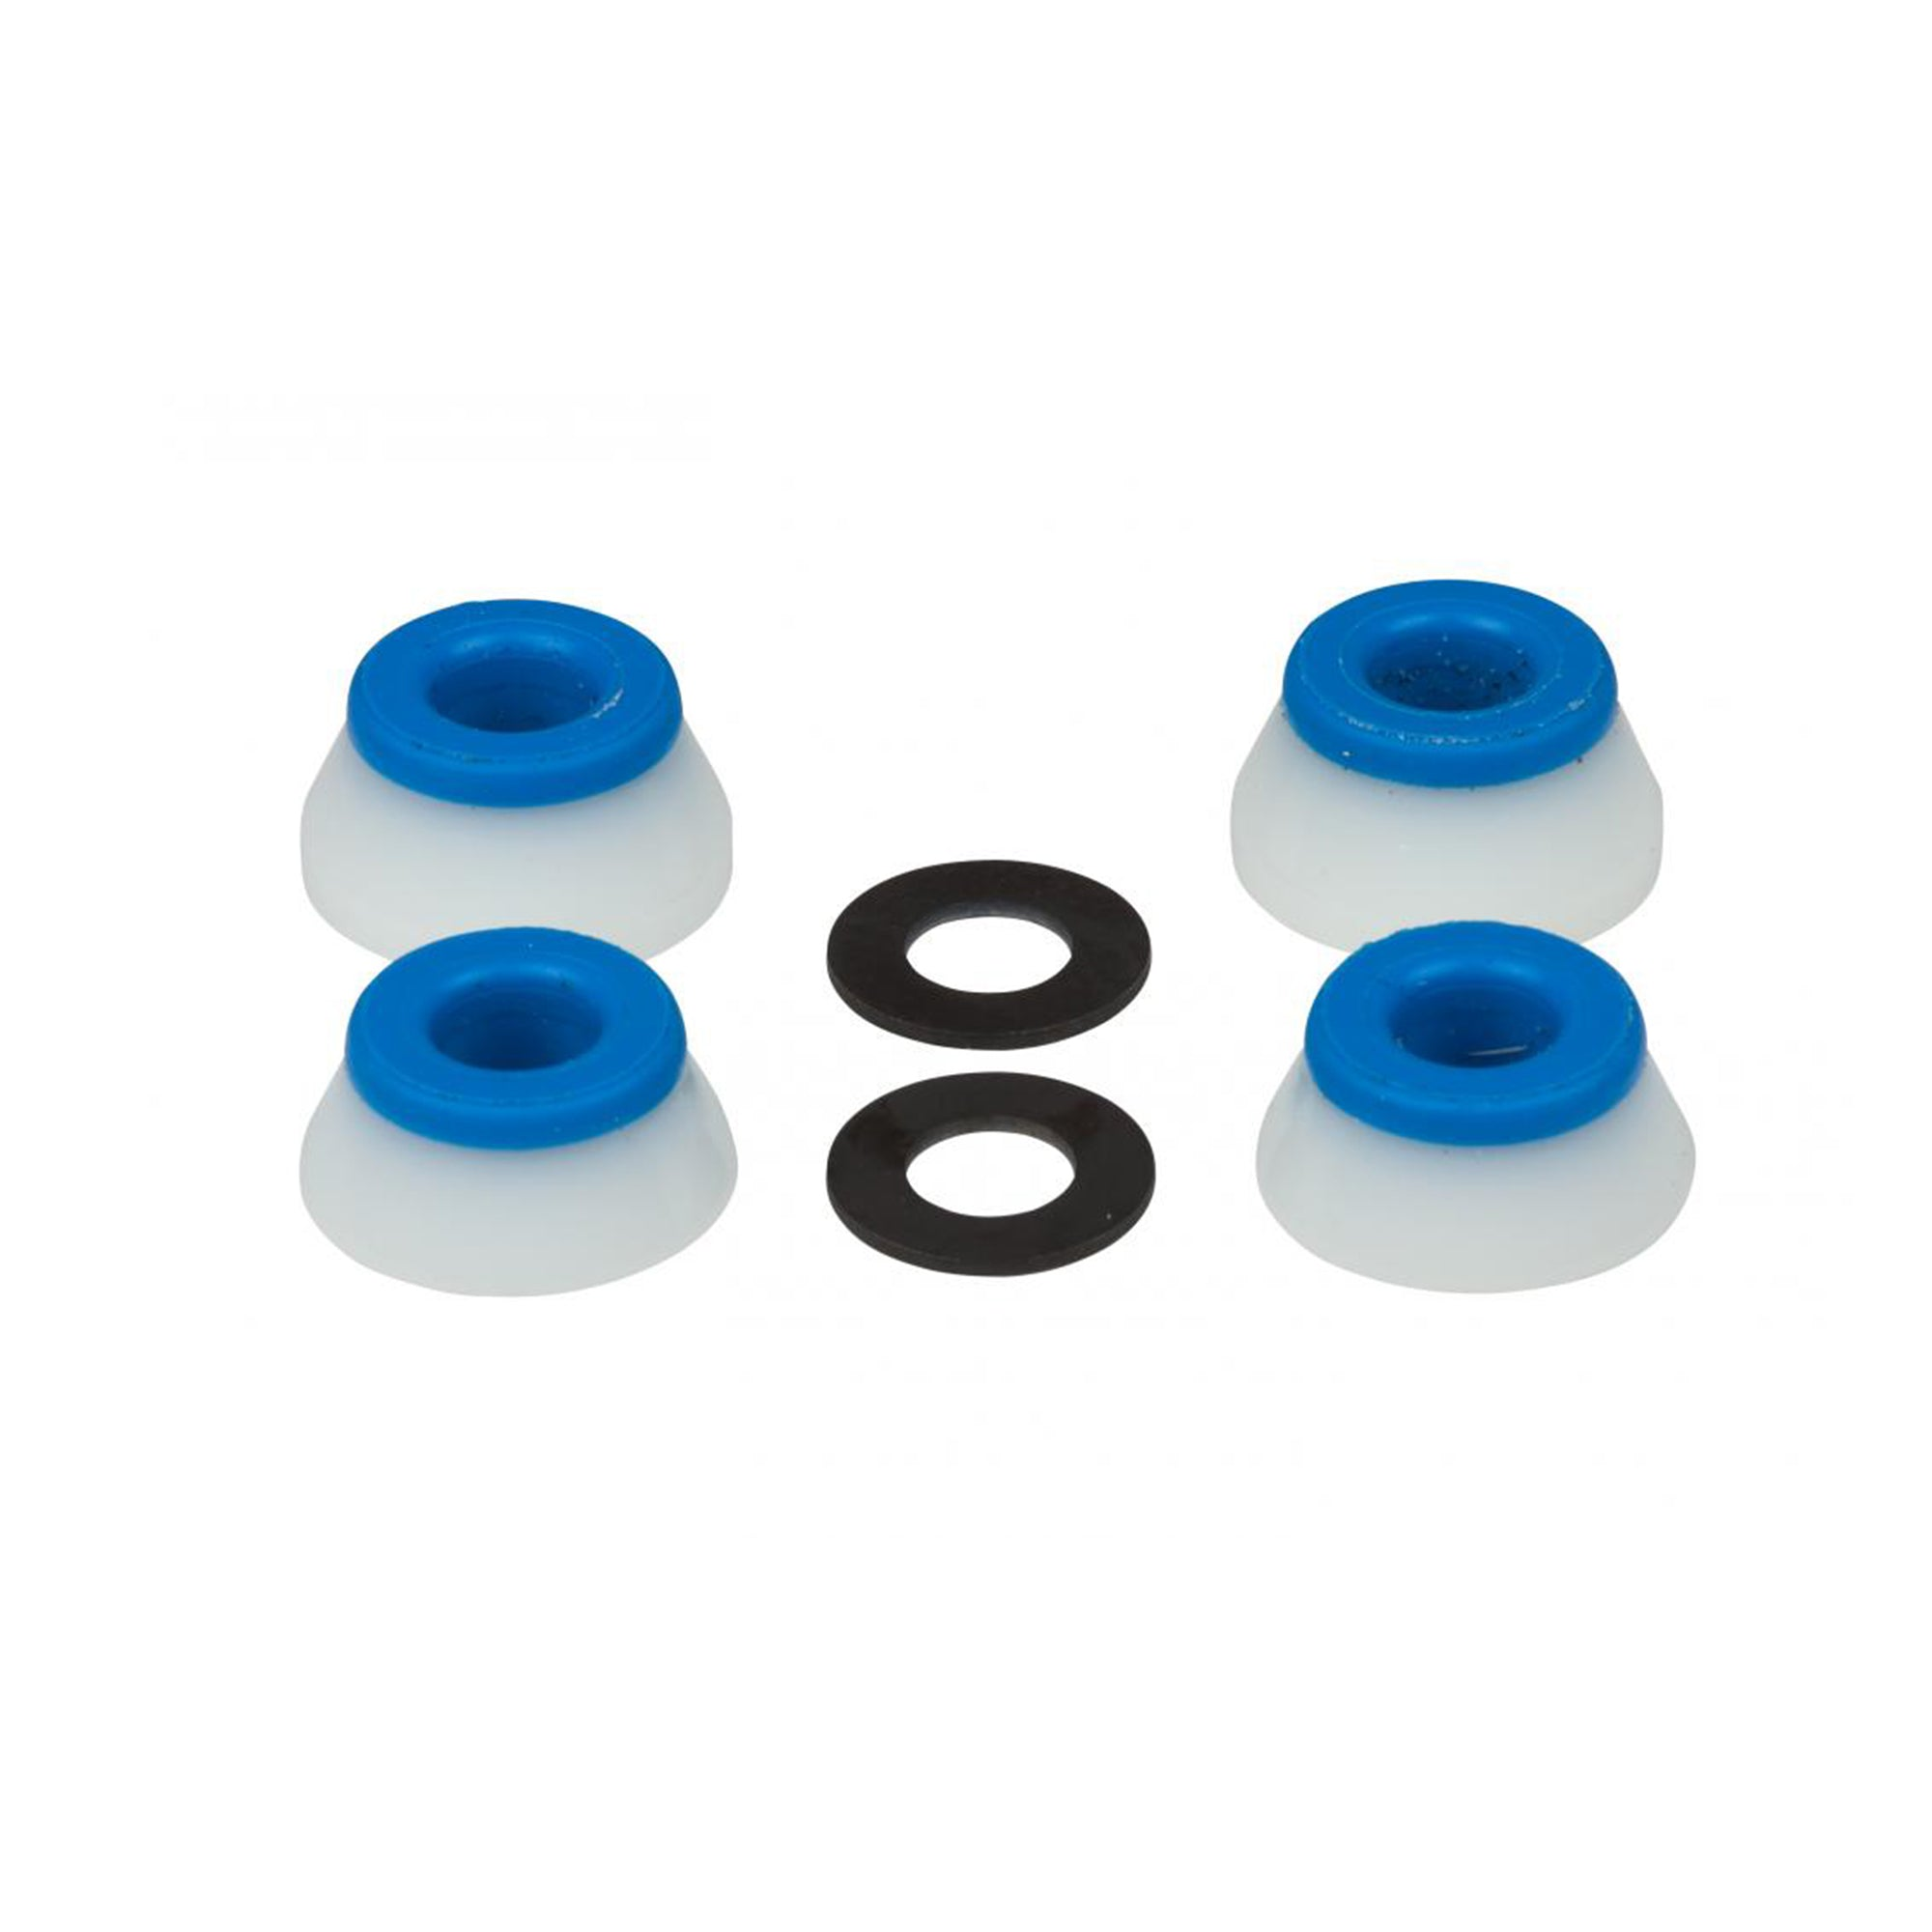 Bones Bushings - Soft